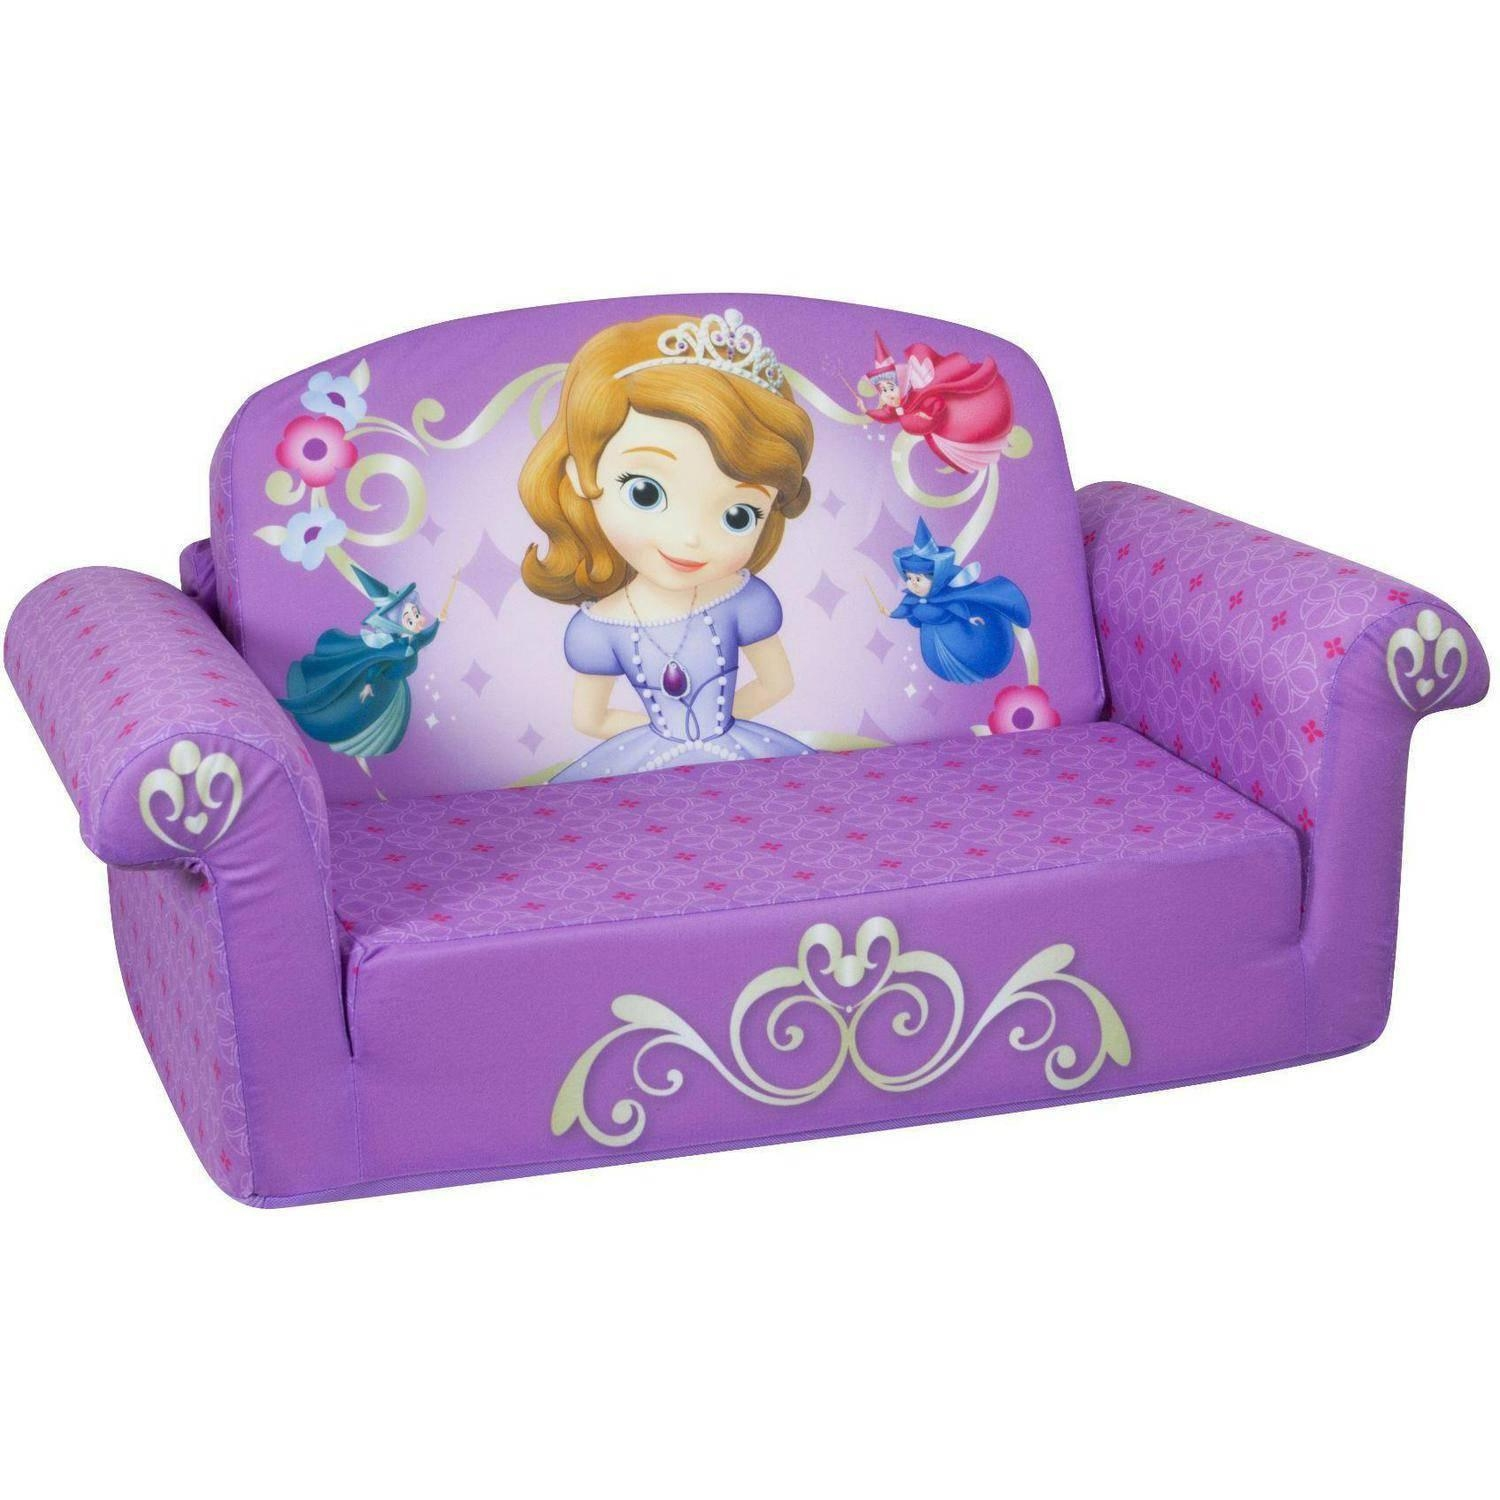 Marshmallow 2 In 1 Flip Open Sofa, Disney Sofia The First Within Disney Princess Couches (View 11 of 20)